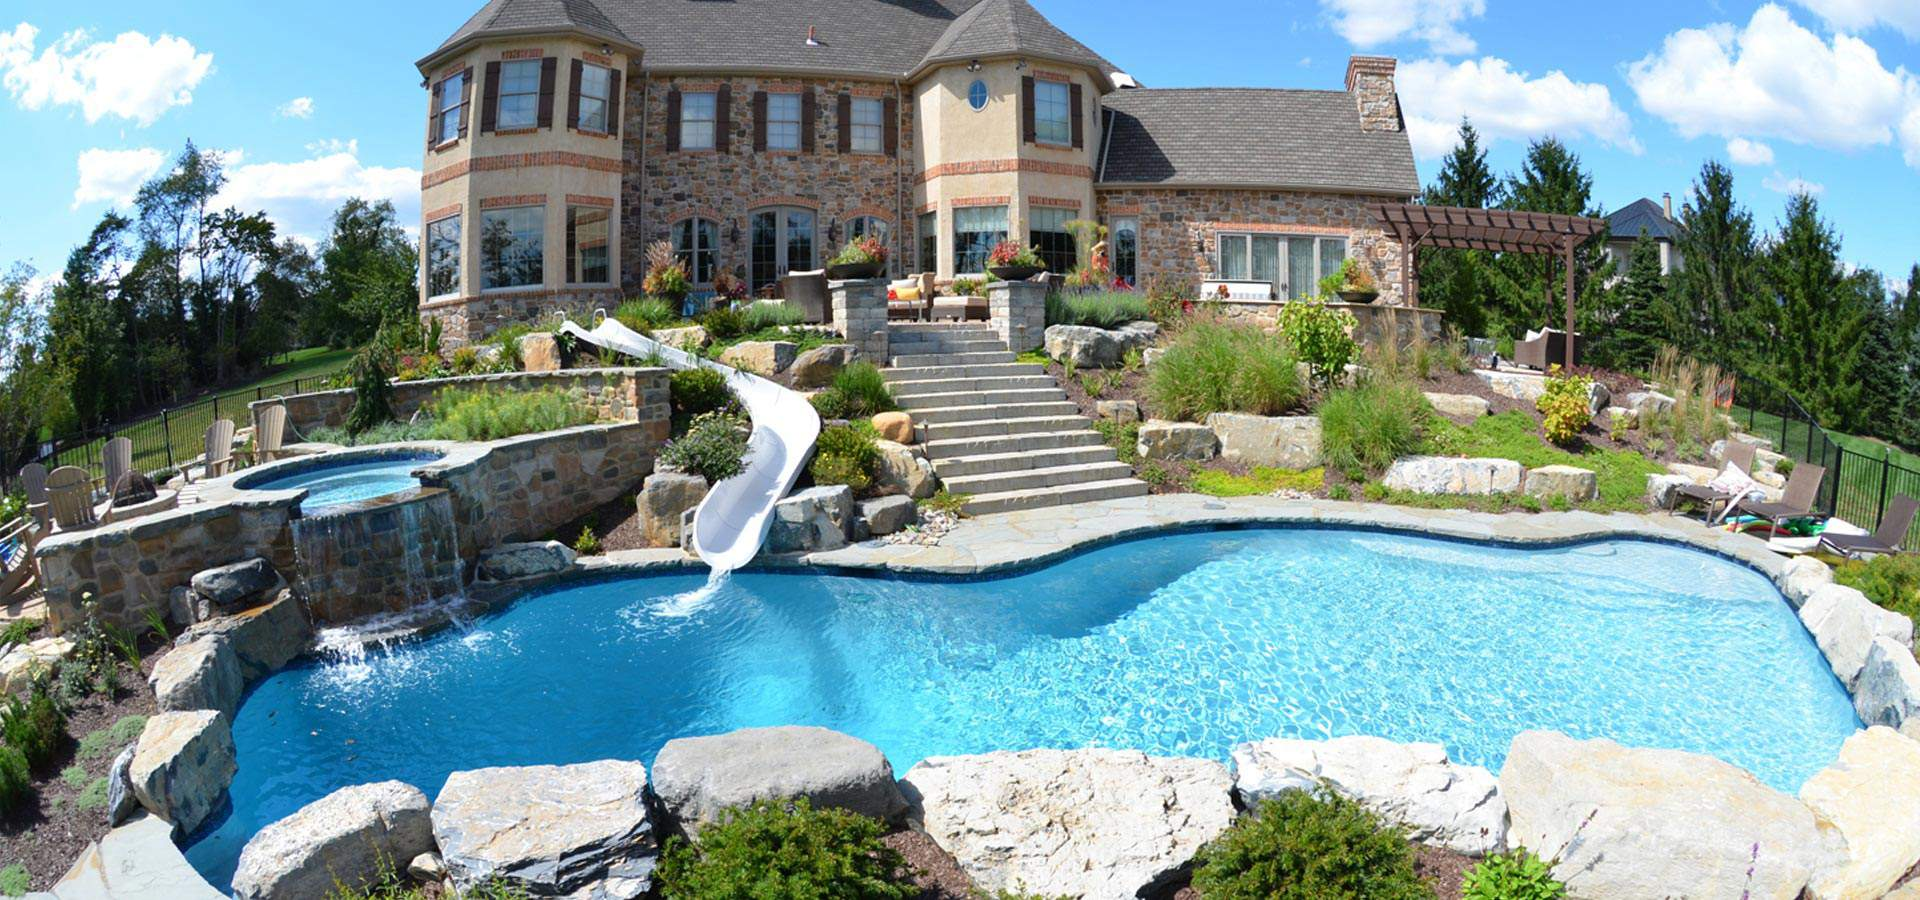 1 pool builder in lehigh valley pa best inground pools for Large swimming pool designs